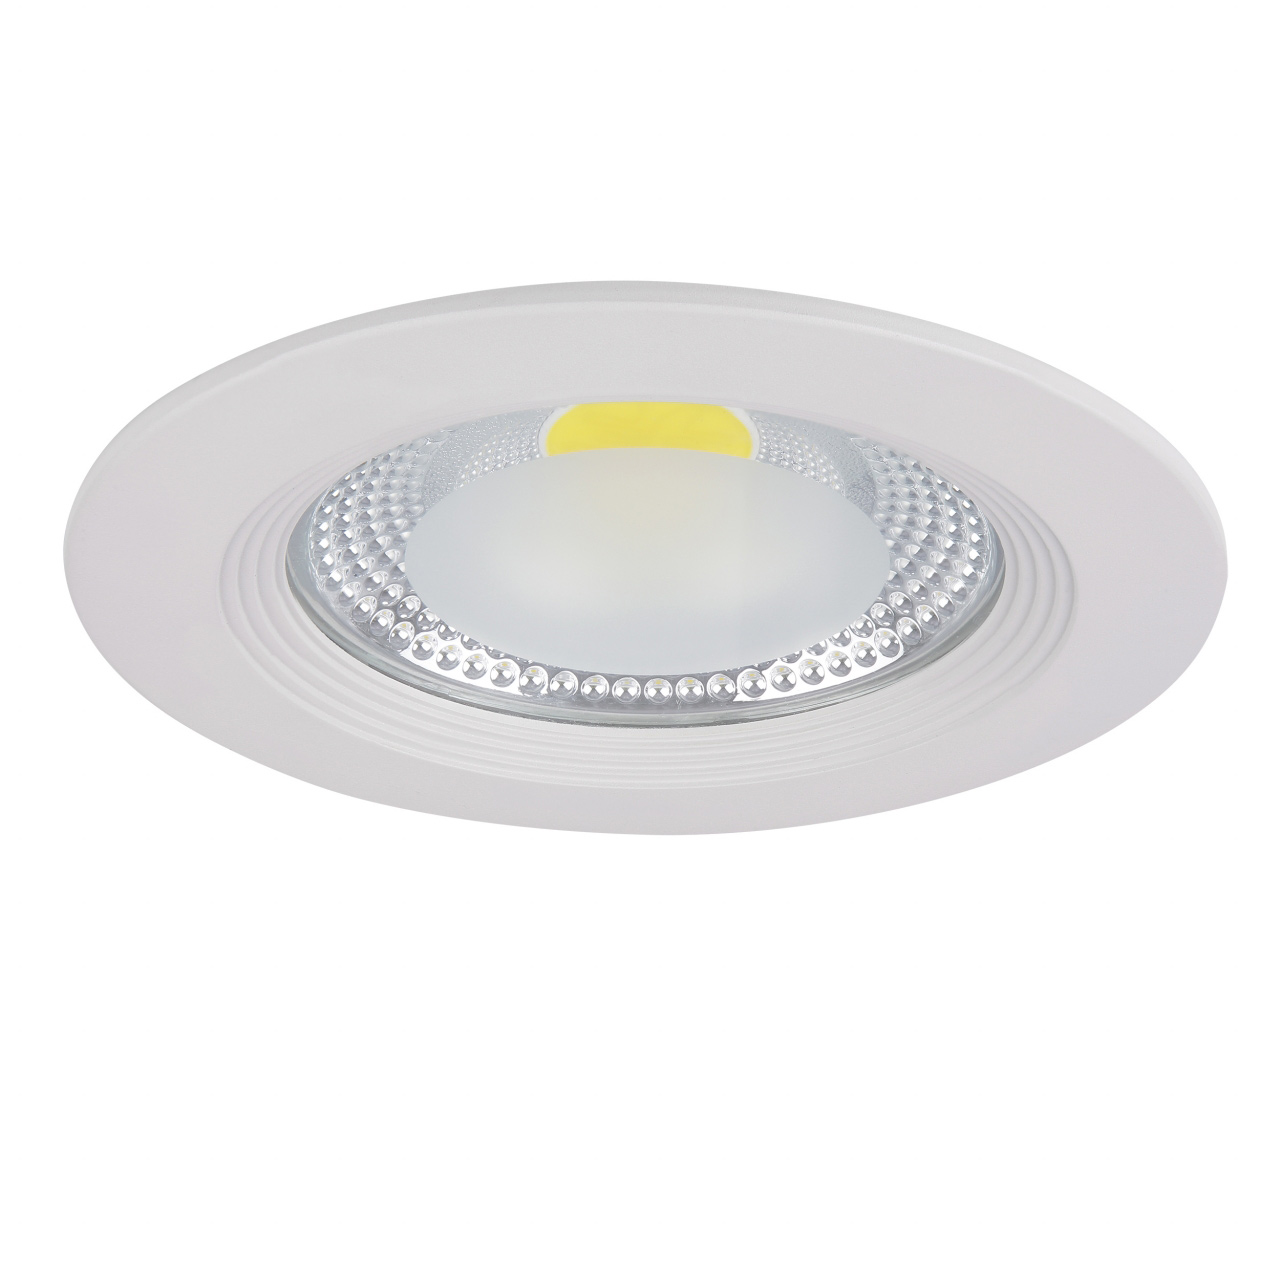 Светильник Forto LED 15W 1430LM 55G 3000K Lightstar 223152